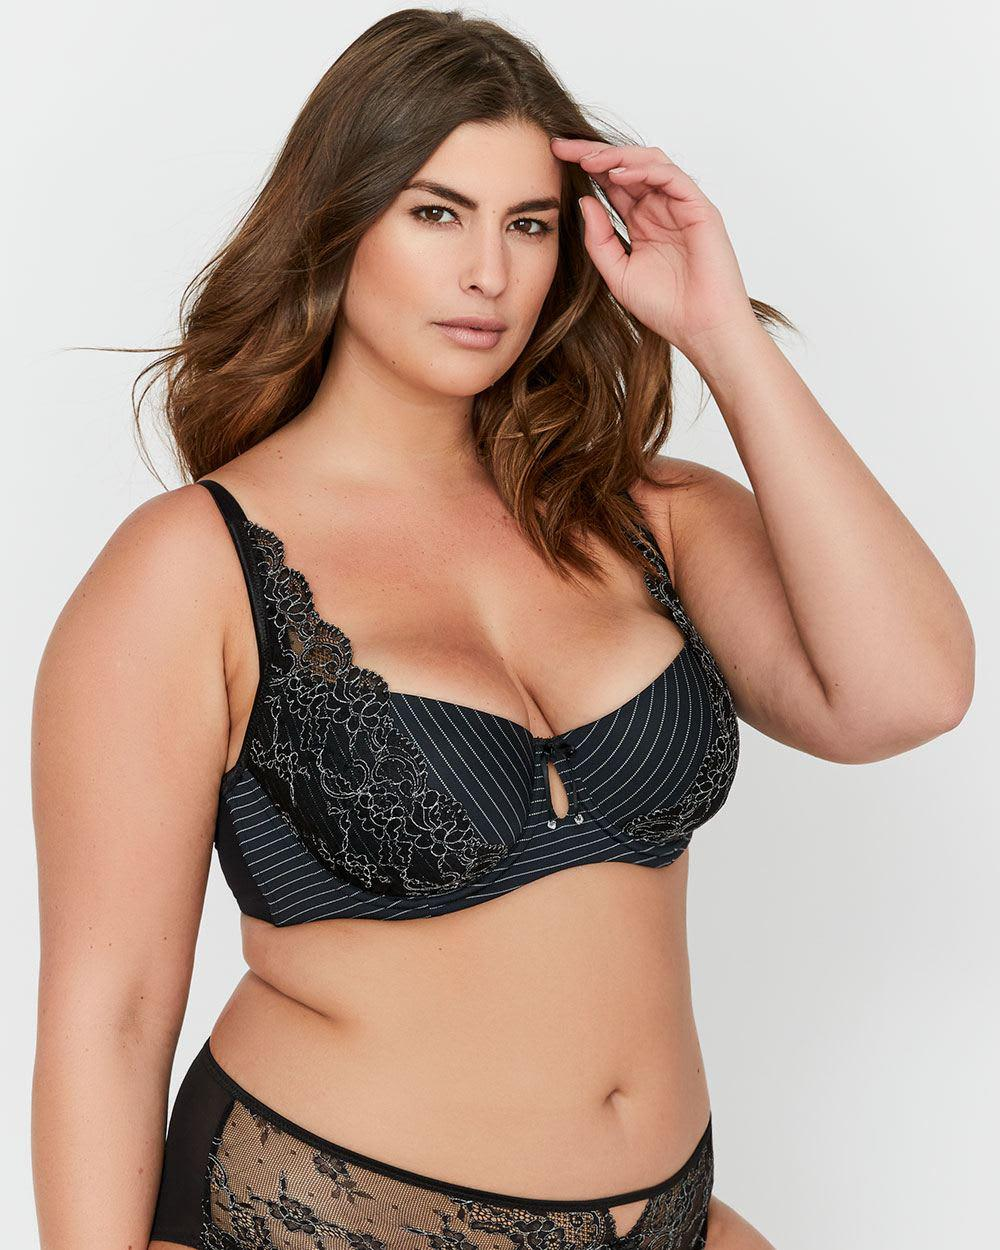 89448b16f1115 Lyst - Addition Elle Ashley Graham Lace And Striped Diva Bra in Black